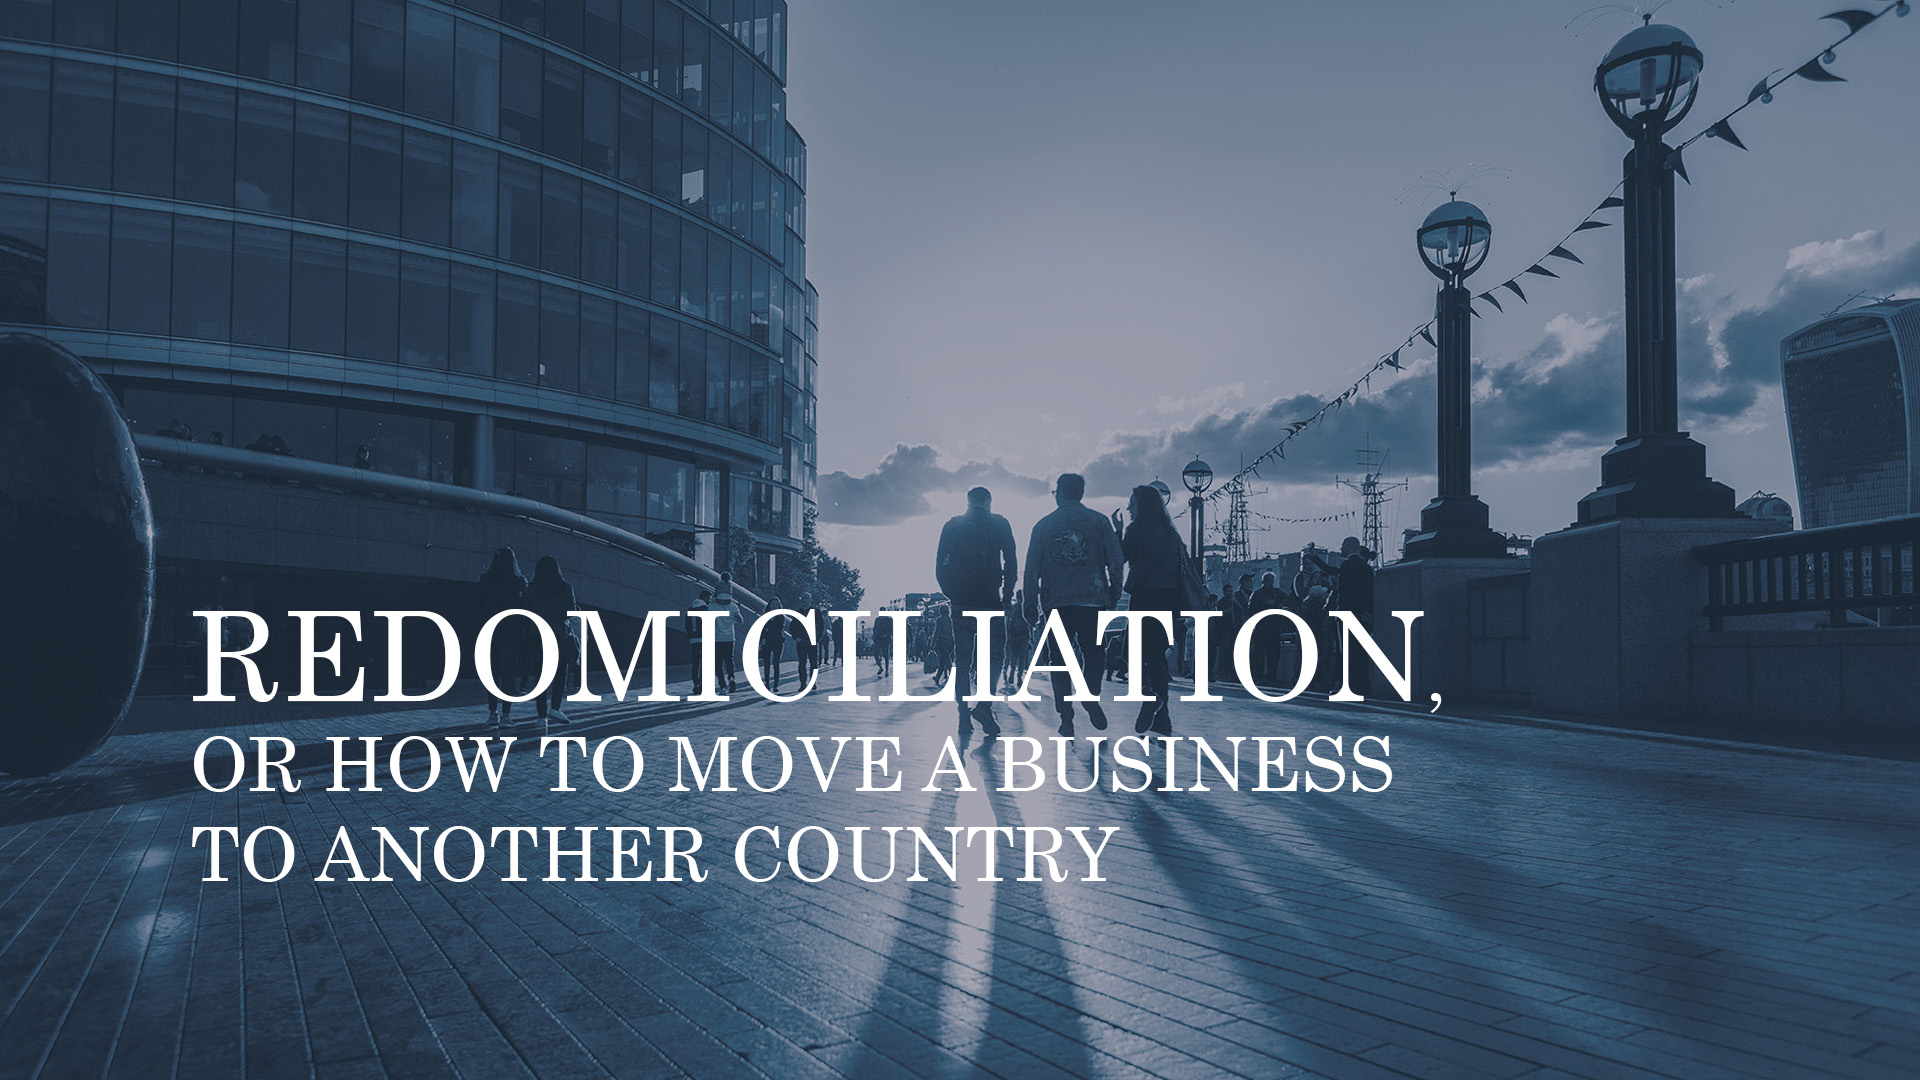 REDOMICILIATION, OR HOW TO MOVE A BUSINESS TO ANOTHER COUNTRY